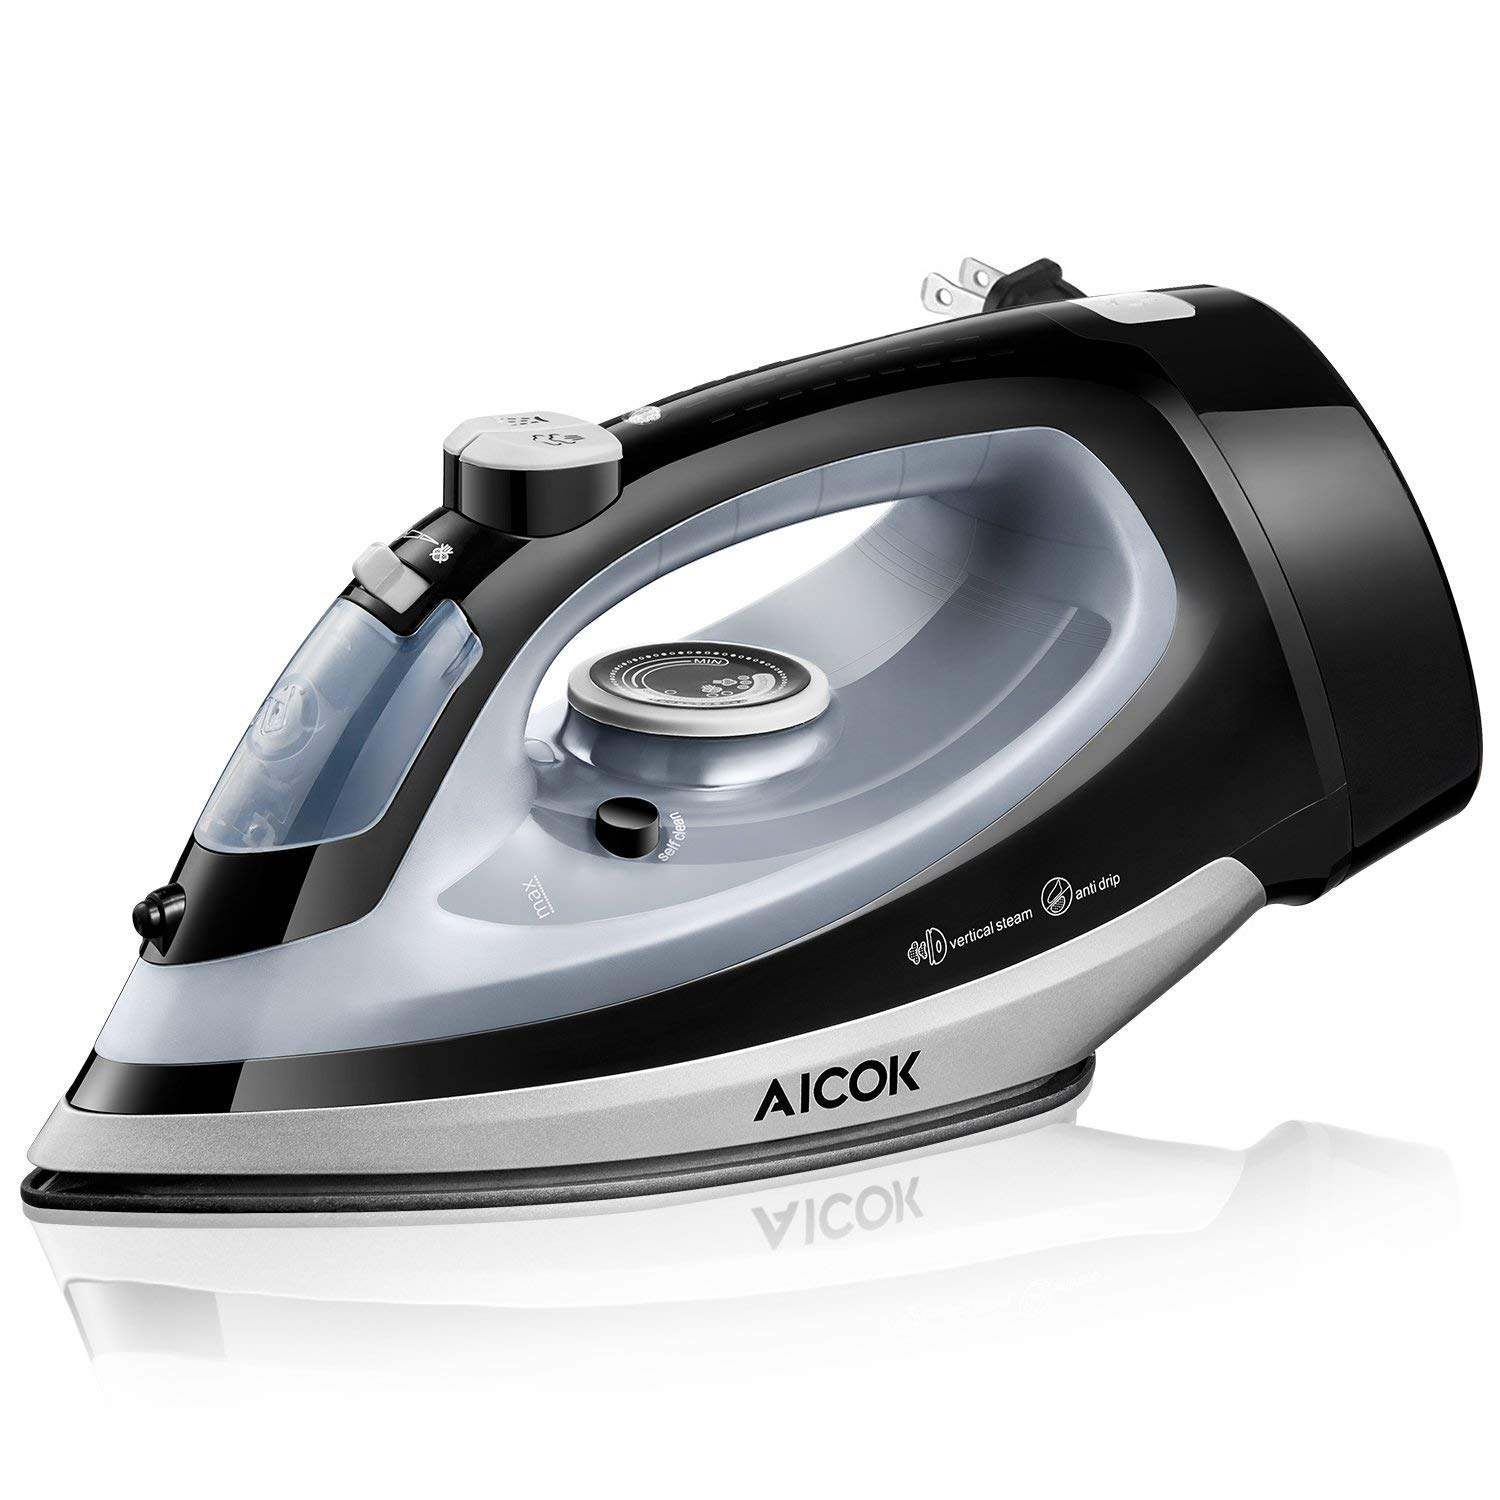 AICOK Steam Iron Professional Garment Steamer.